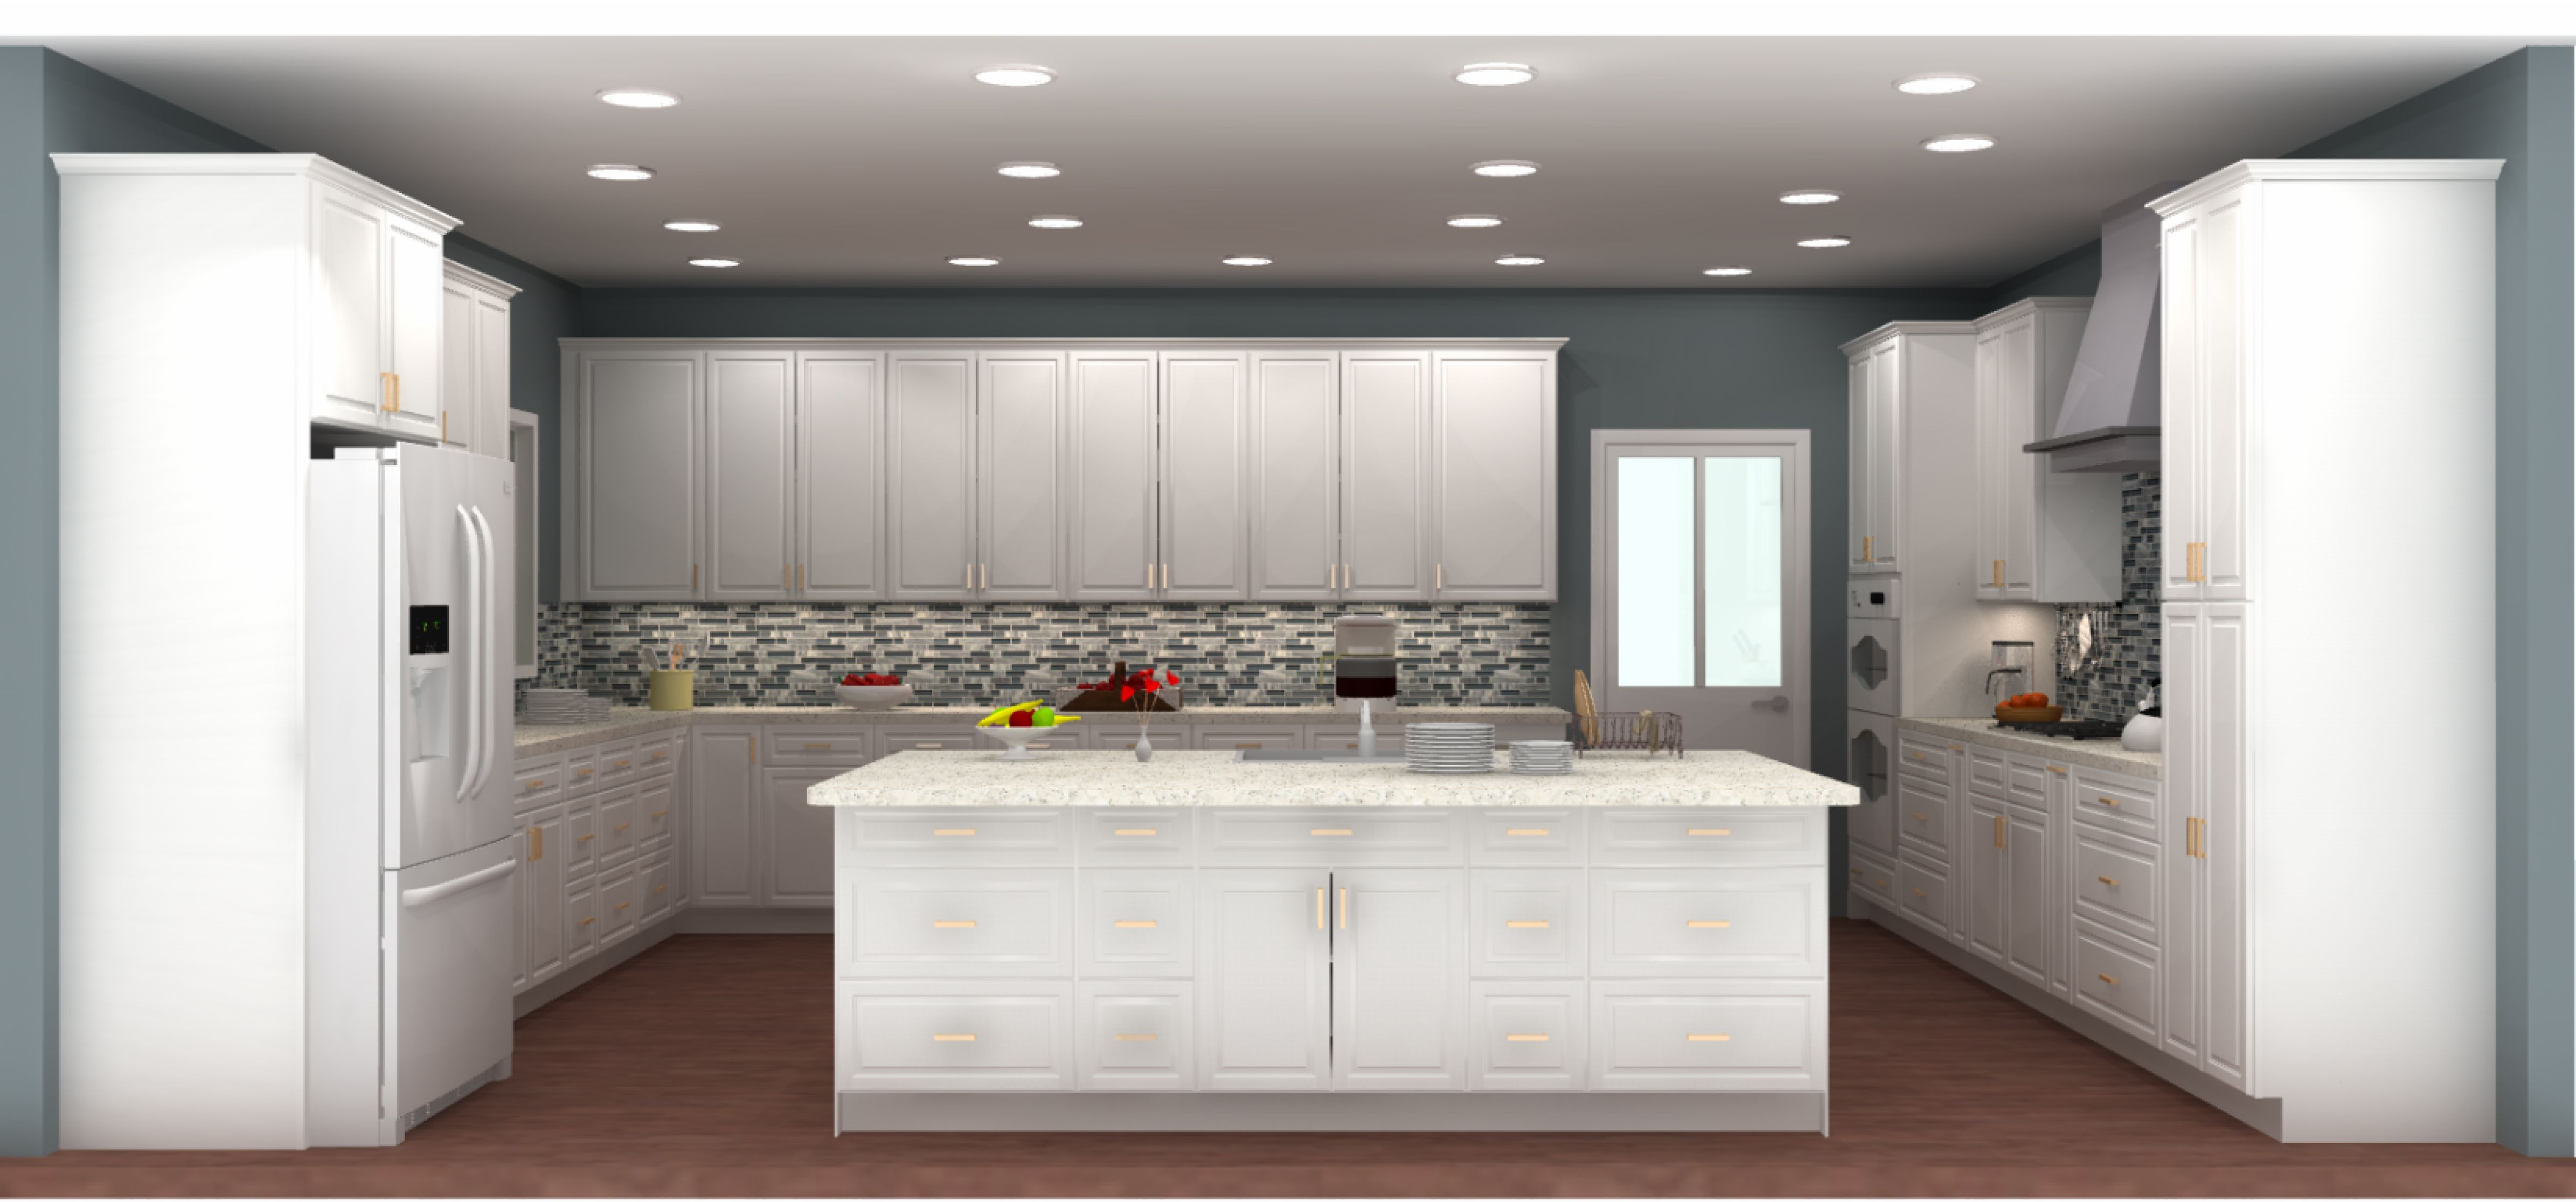 Get a FREE 3D kitchen design at Lily Ann Visit